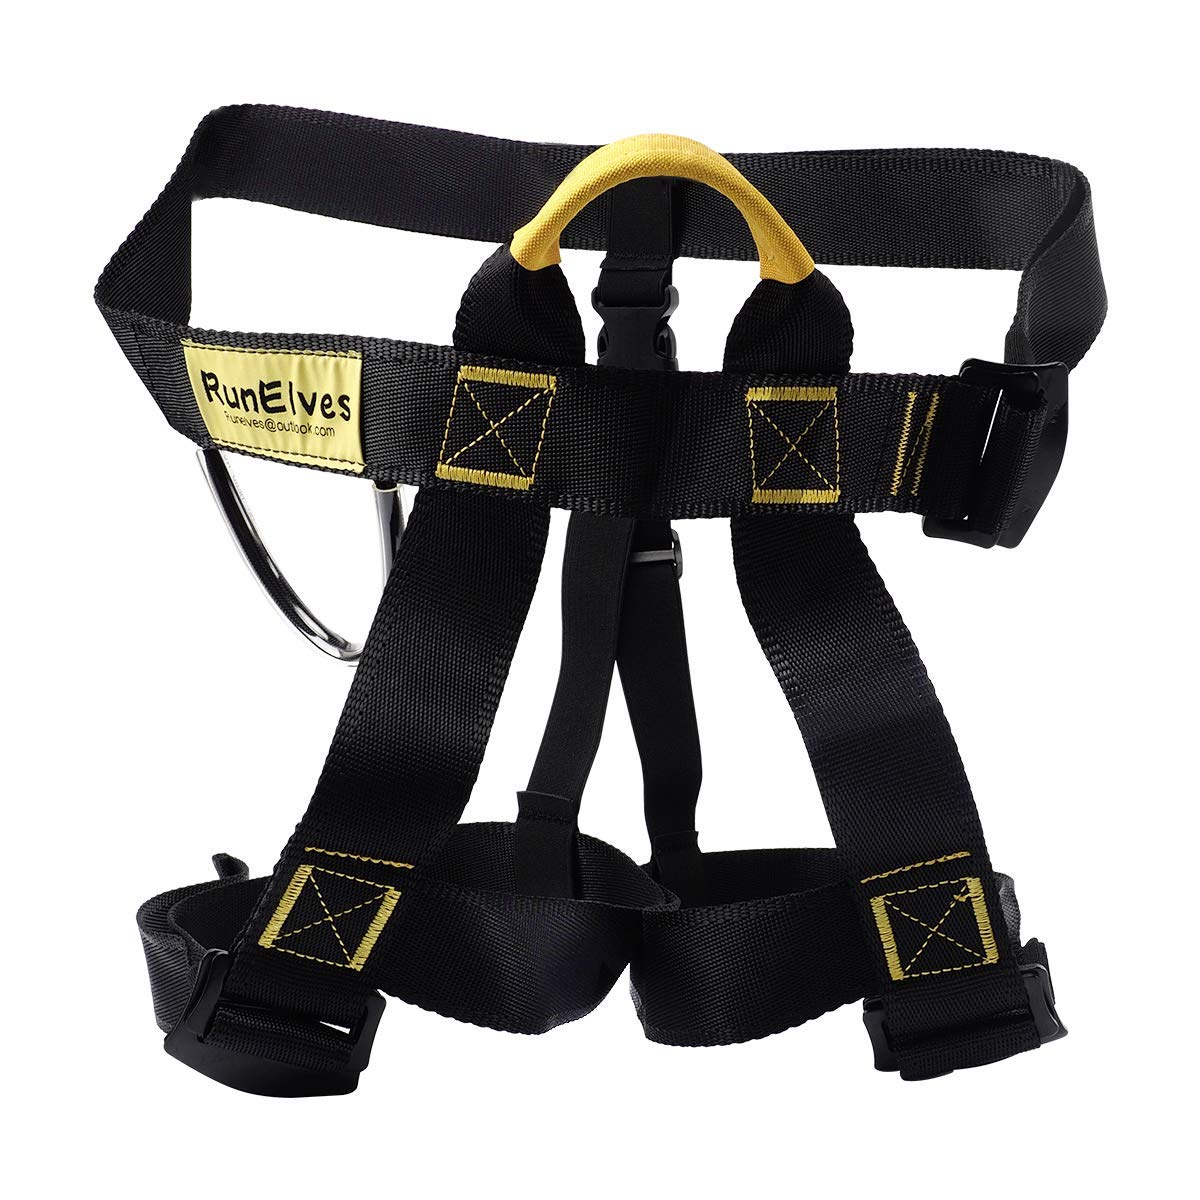 Climbing Harness,Thicken Protect Waist Leg Tree Arborist Climbing Safety Harness, Wider Seat Belts for Professional Mountain Fire Rescue,Rock Climbing Rappelling,Half Body Harness for Women Man Kids